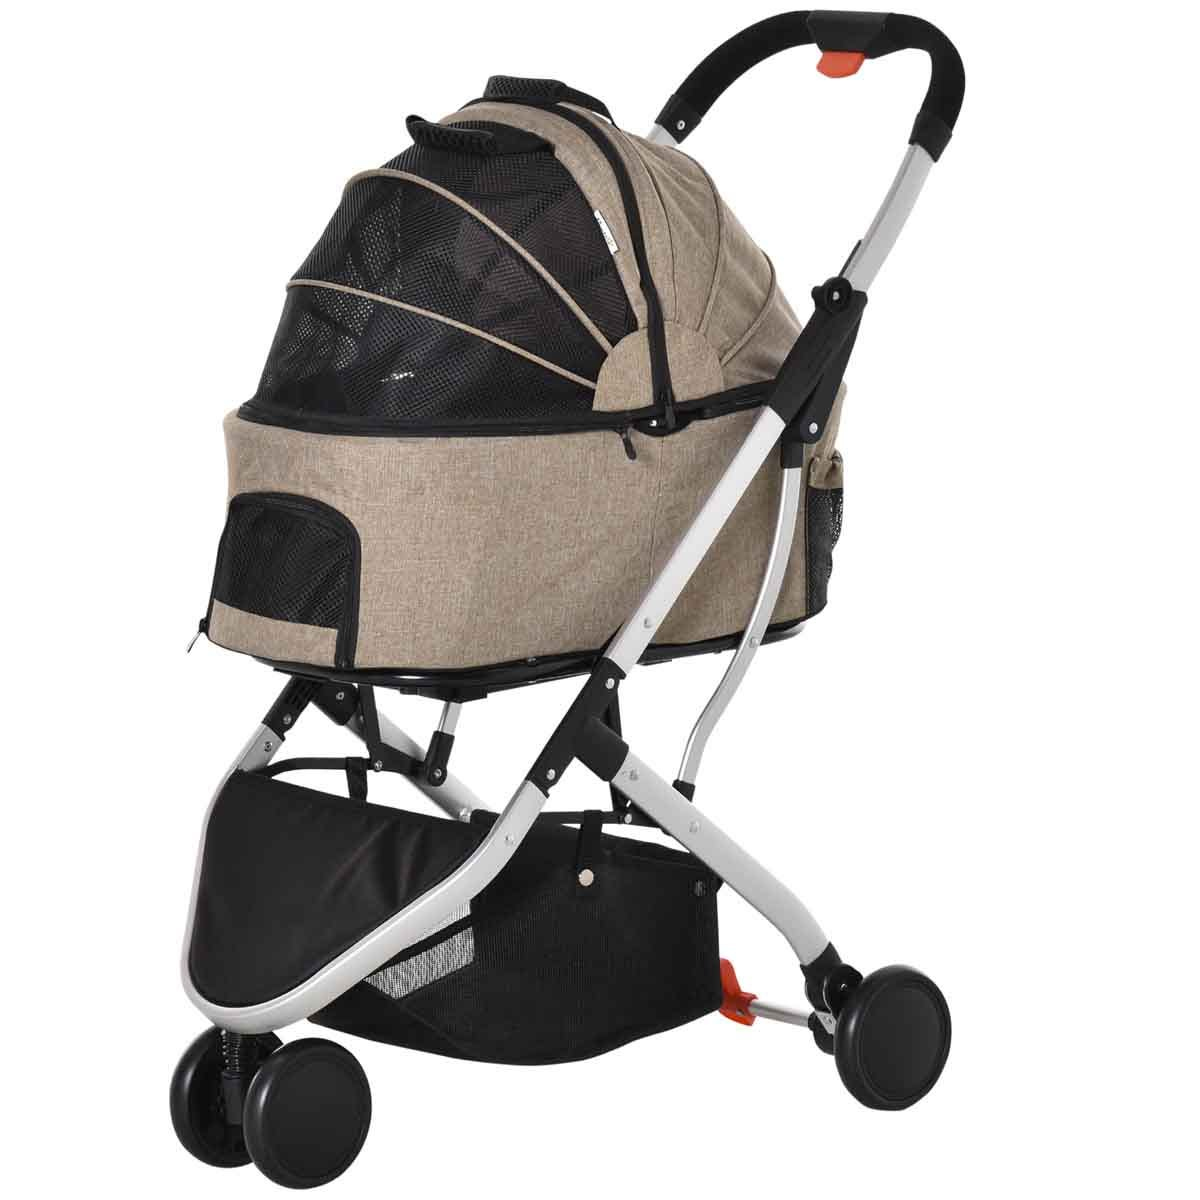 PawHut 2-in-1 Foldable Pet Stroller/Carrying Bag - Brown